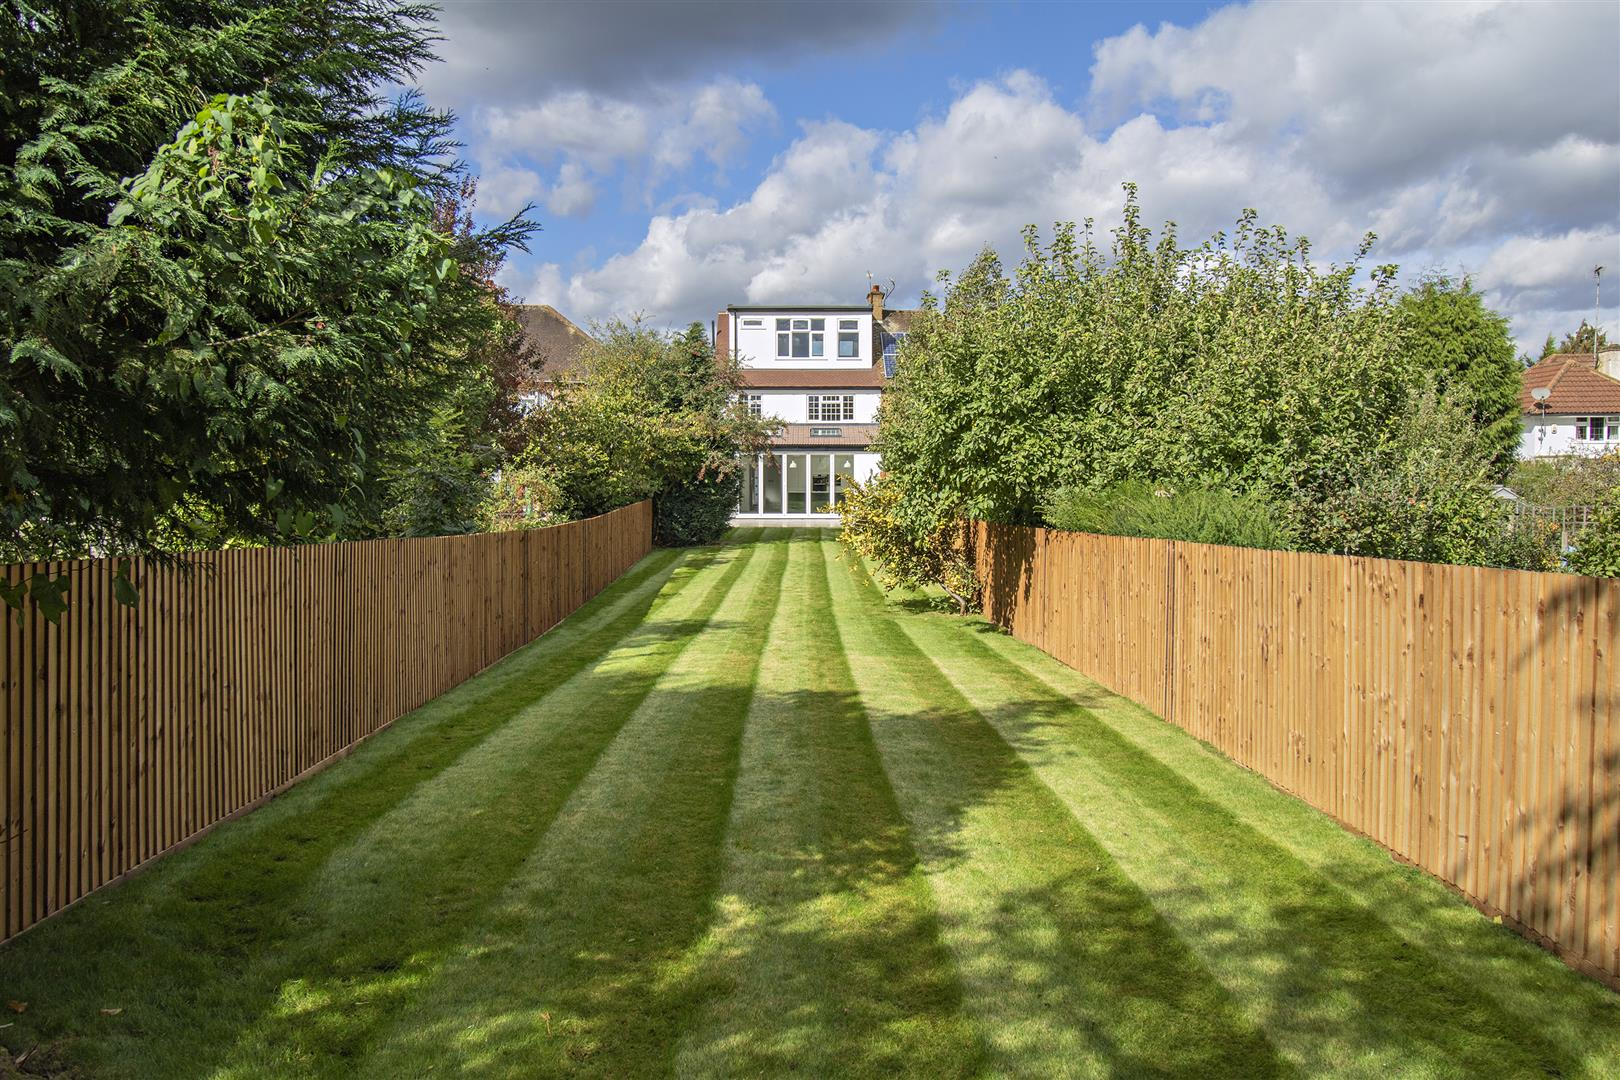 4 bed to rent in Loom Lane, Radlett - (Property Image 14)